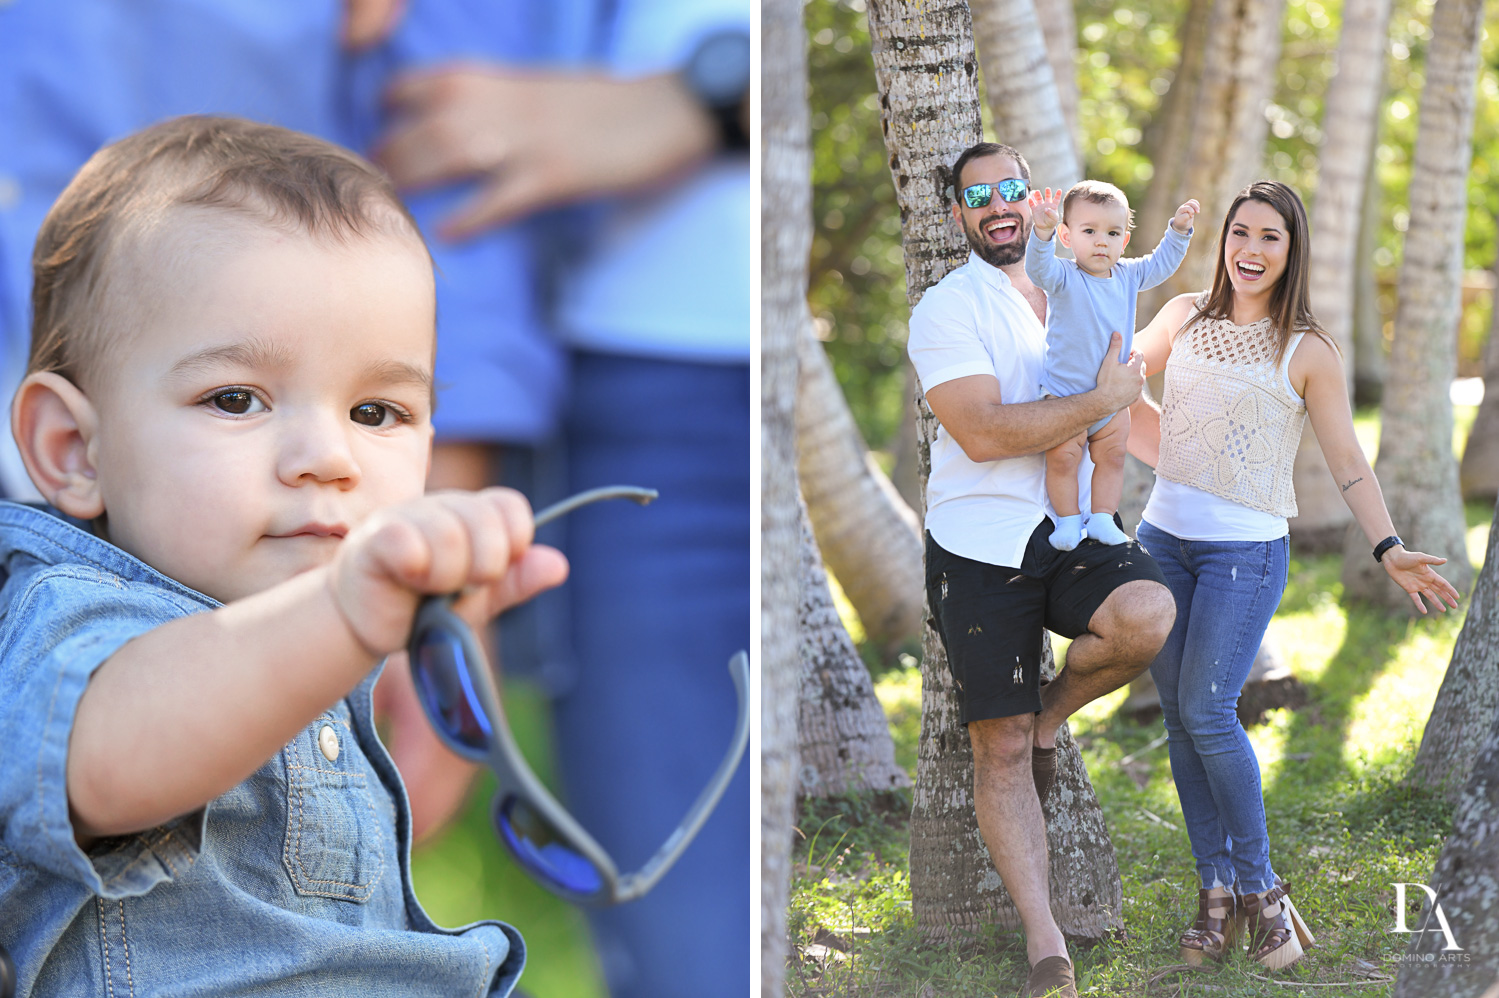 cute family at Urban baby Photo Session in Coral Gables by Domino Arts Photography